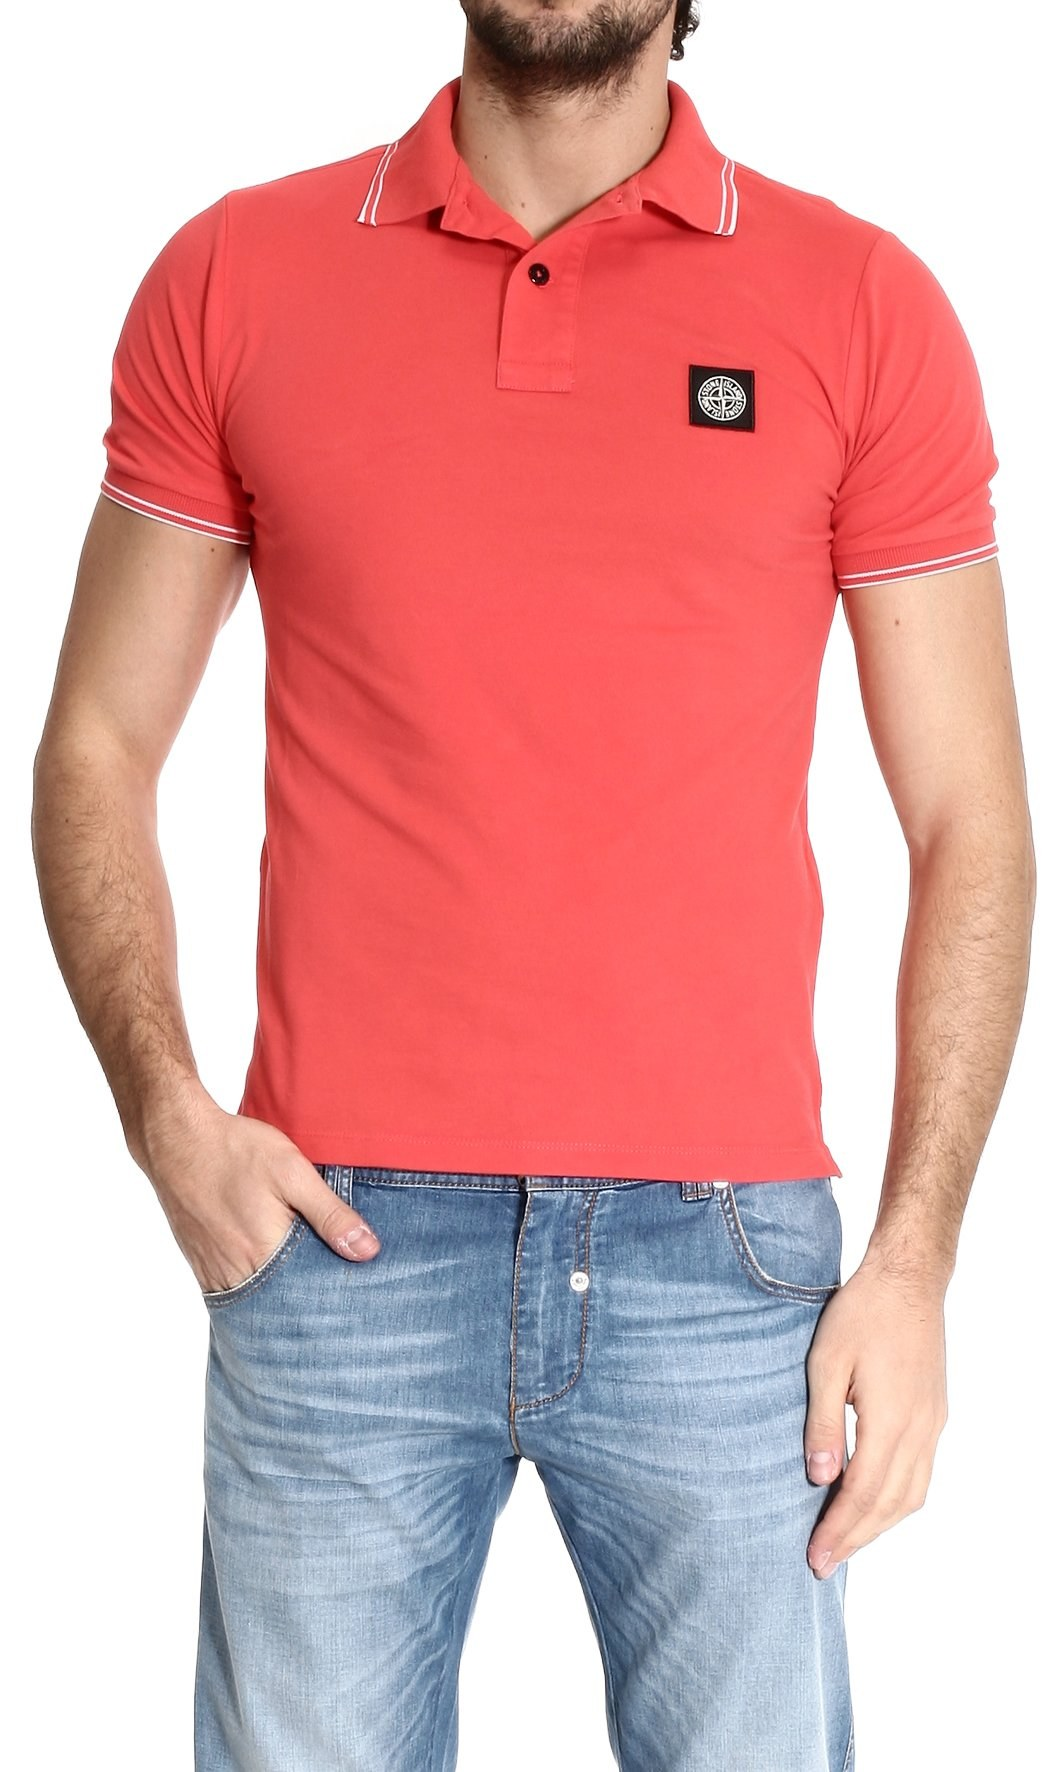 aefce64f4 red polo shirts for men - Ecosia